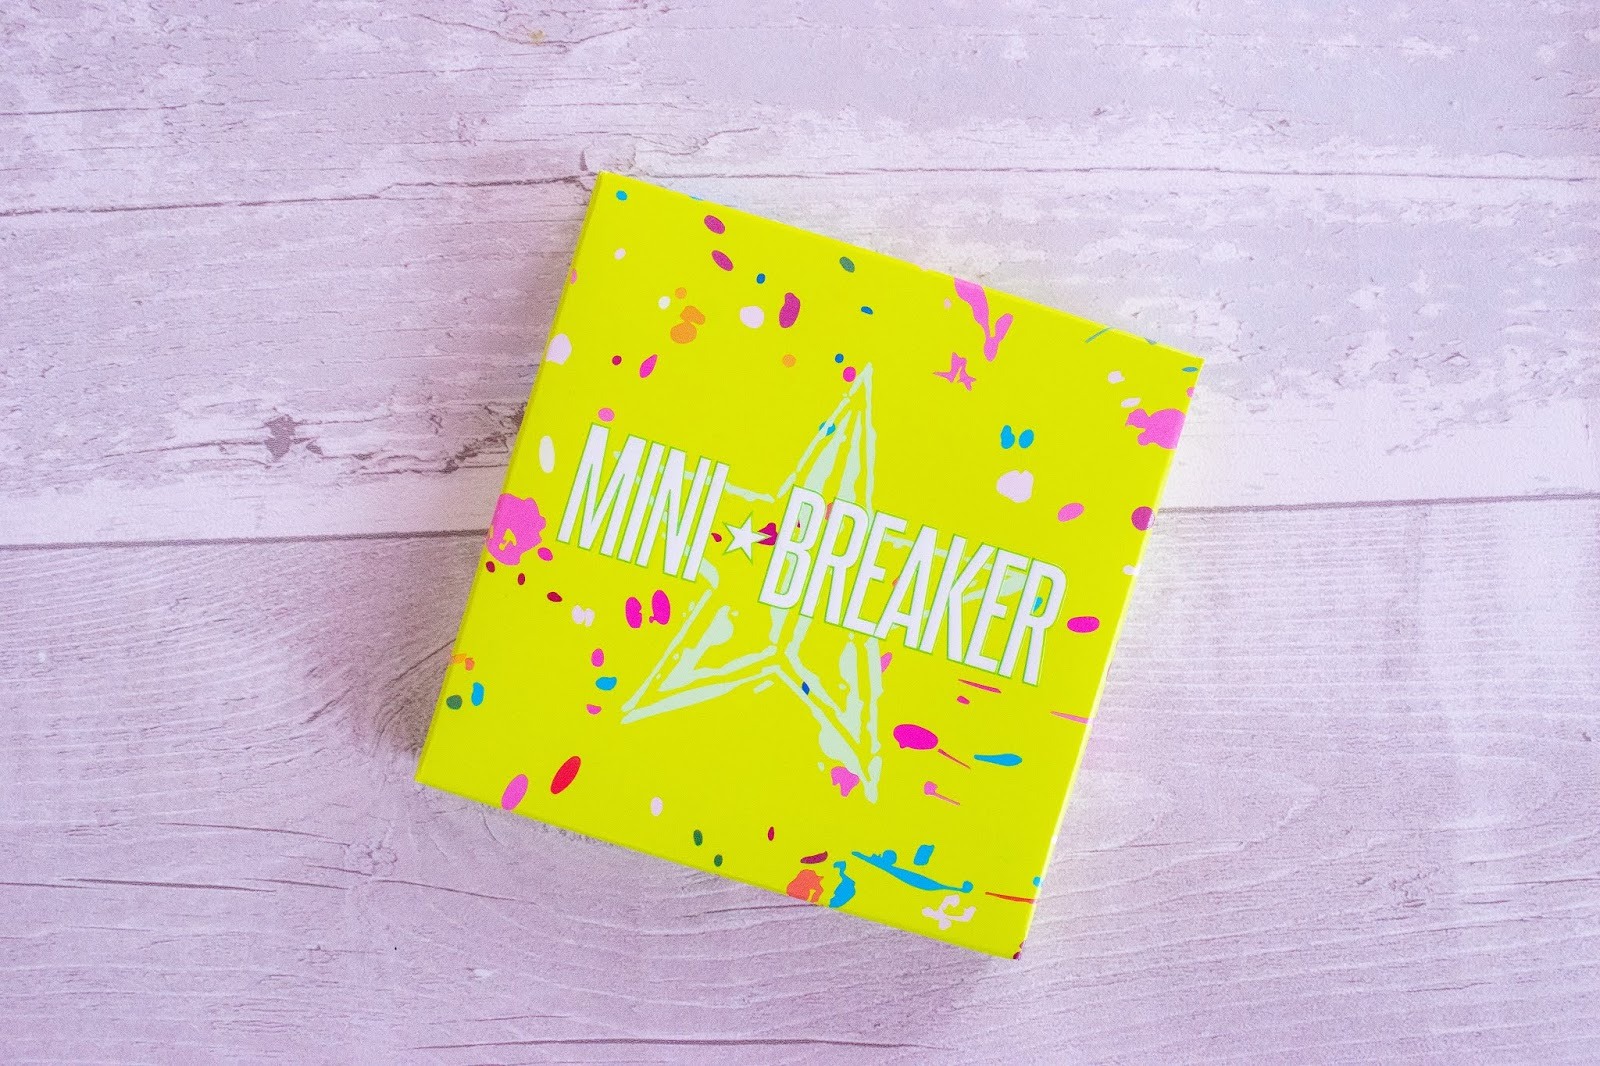 A close up of the Jeffree Star Mini Breaker Palette packaging. The box is neon green with white and pink splats over it.